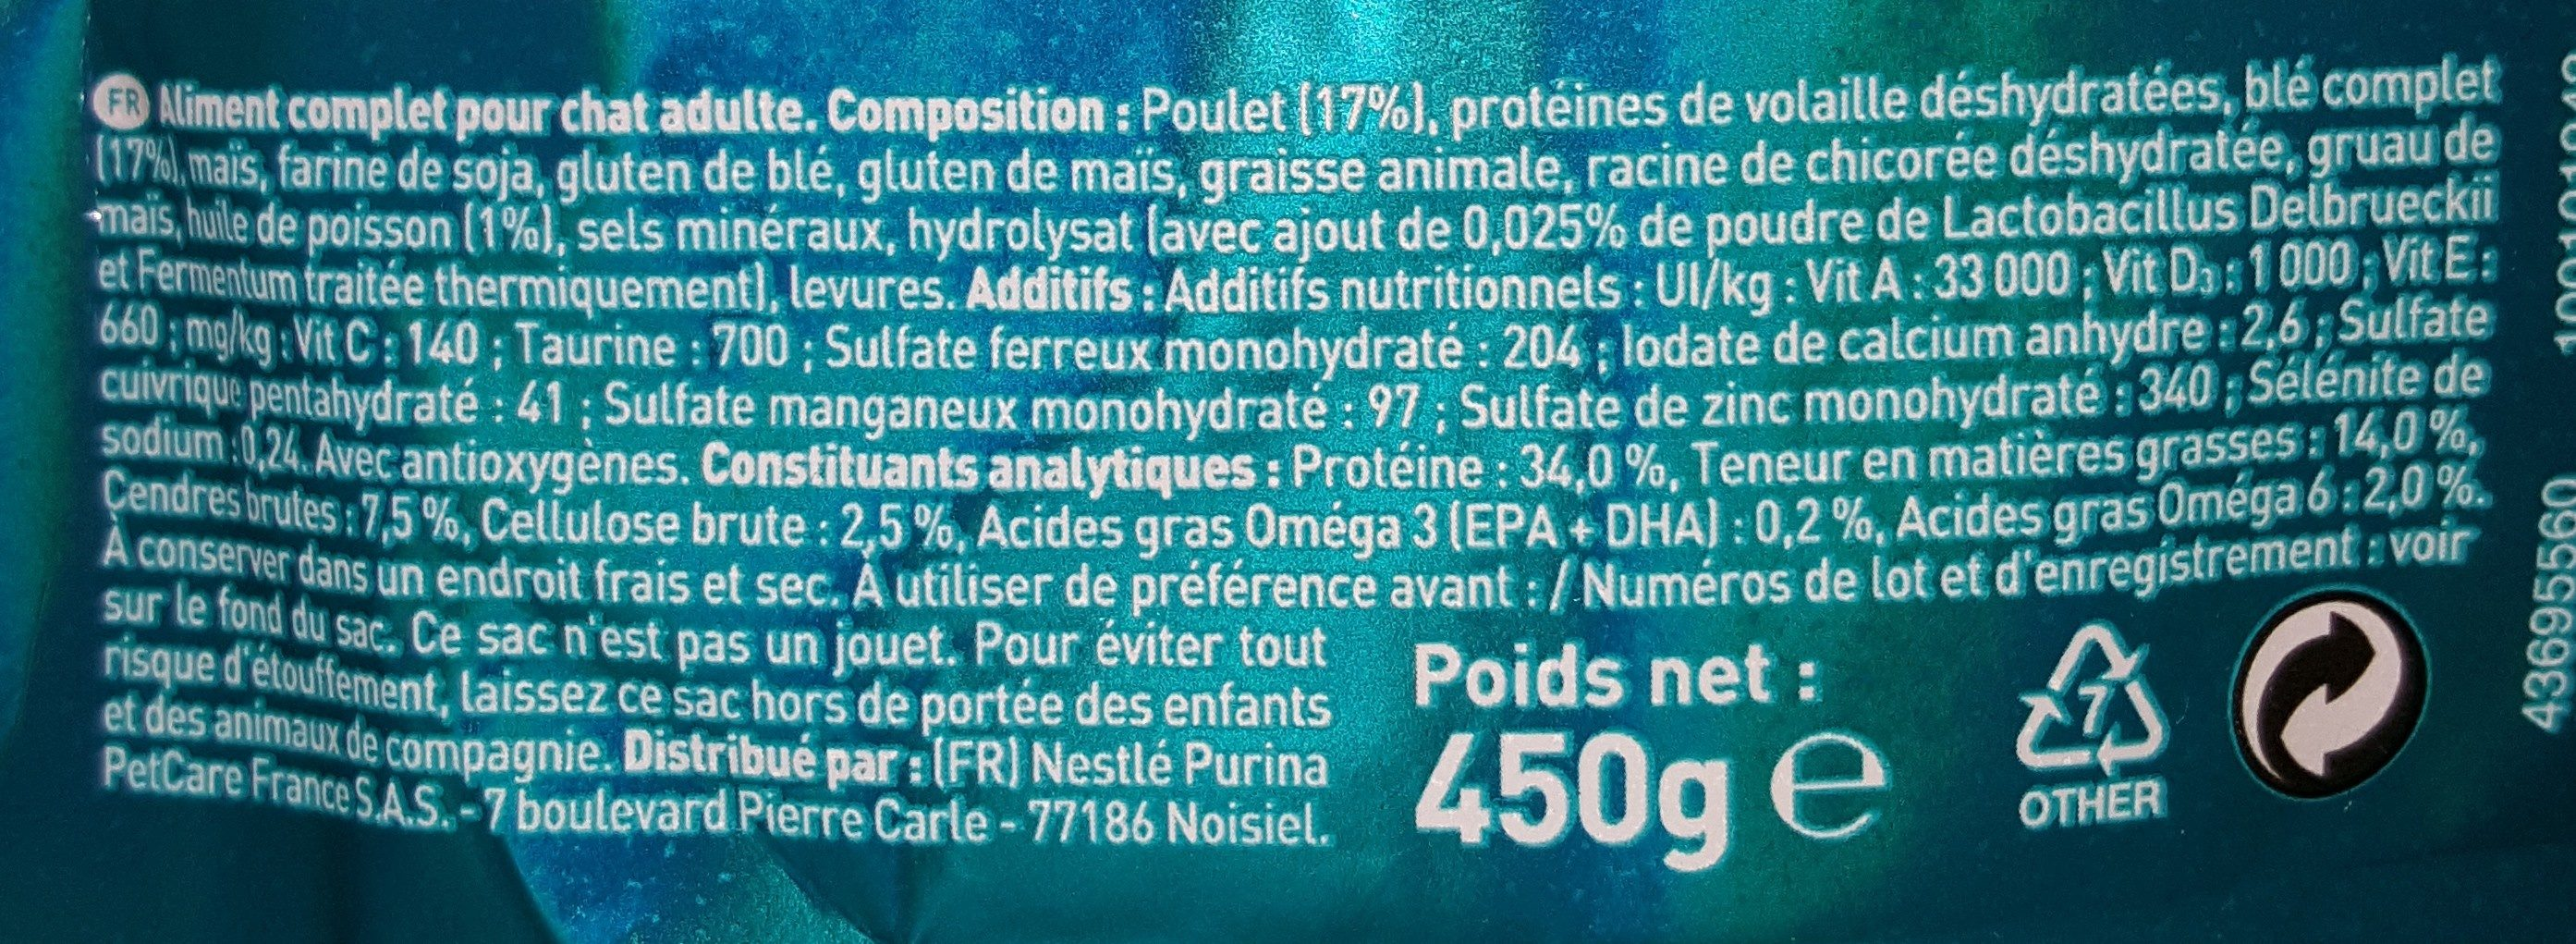 Urinary Care - Nutrition facts